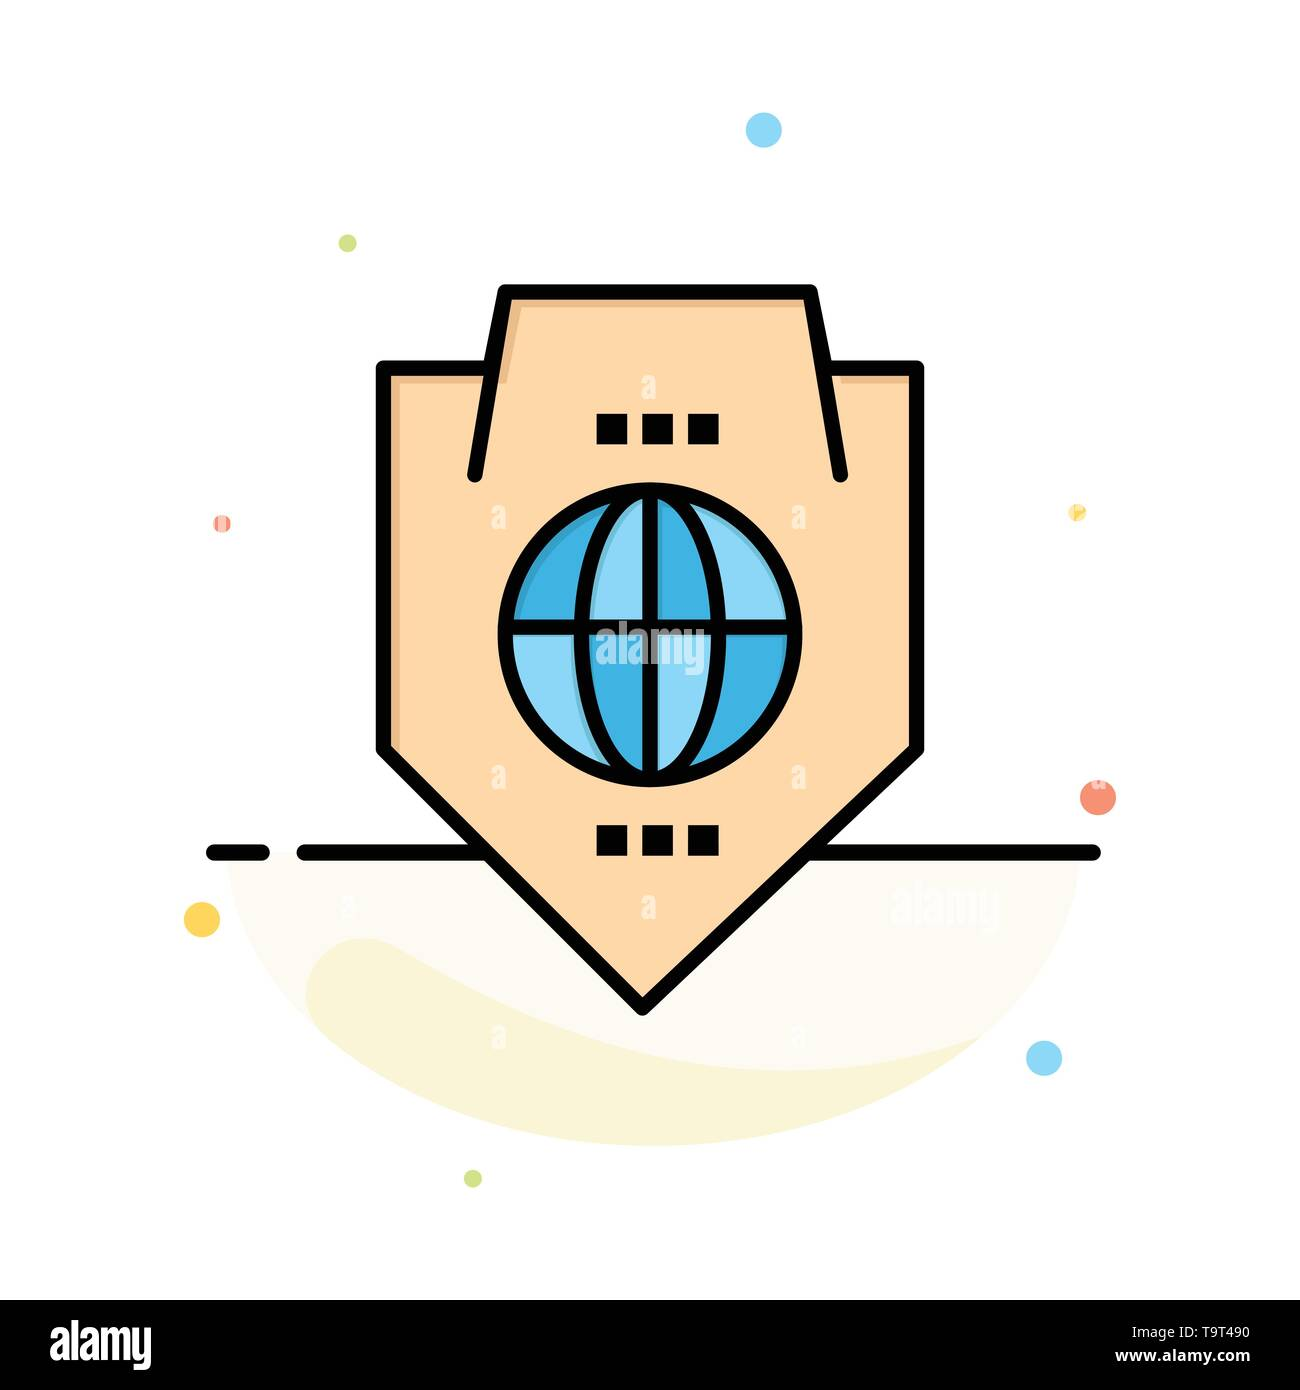 Access, World, Protection, Globe, Shield Abstract Flat Color Icon Template - Stock Image